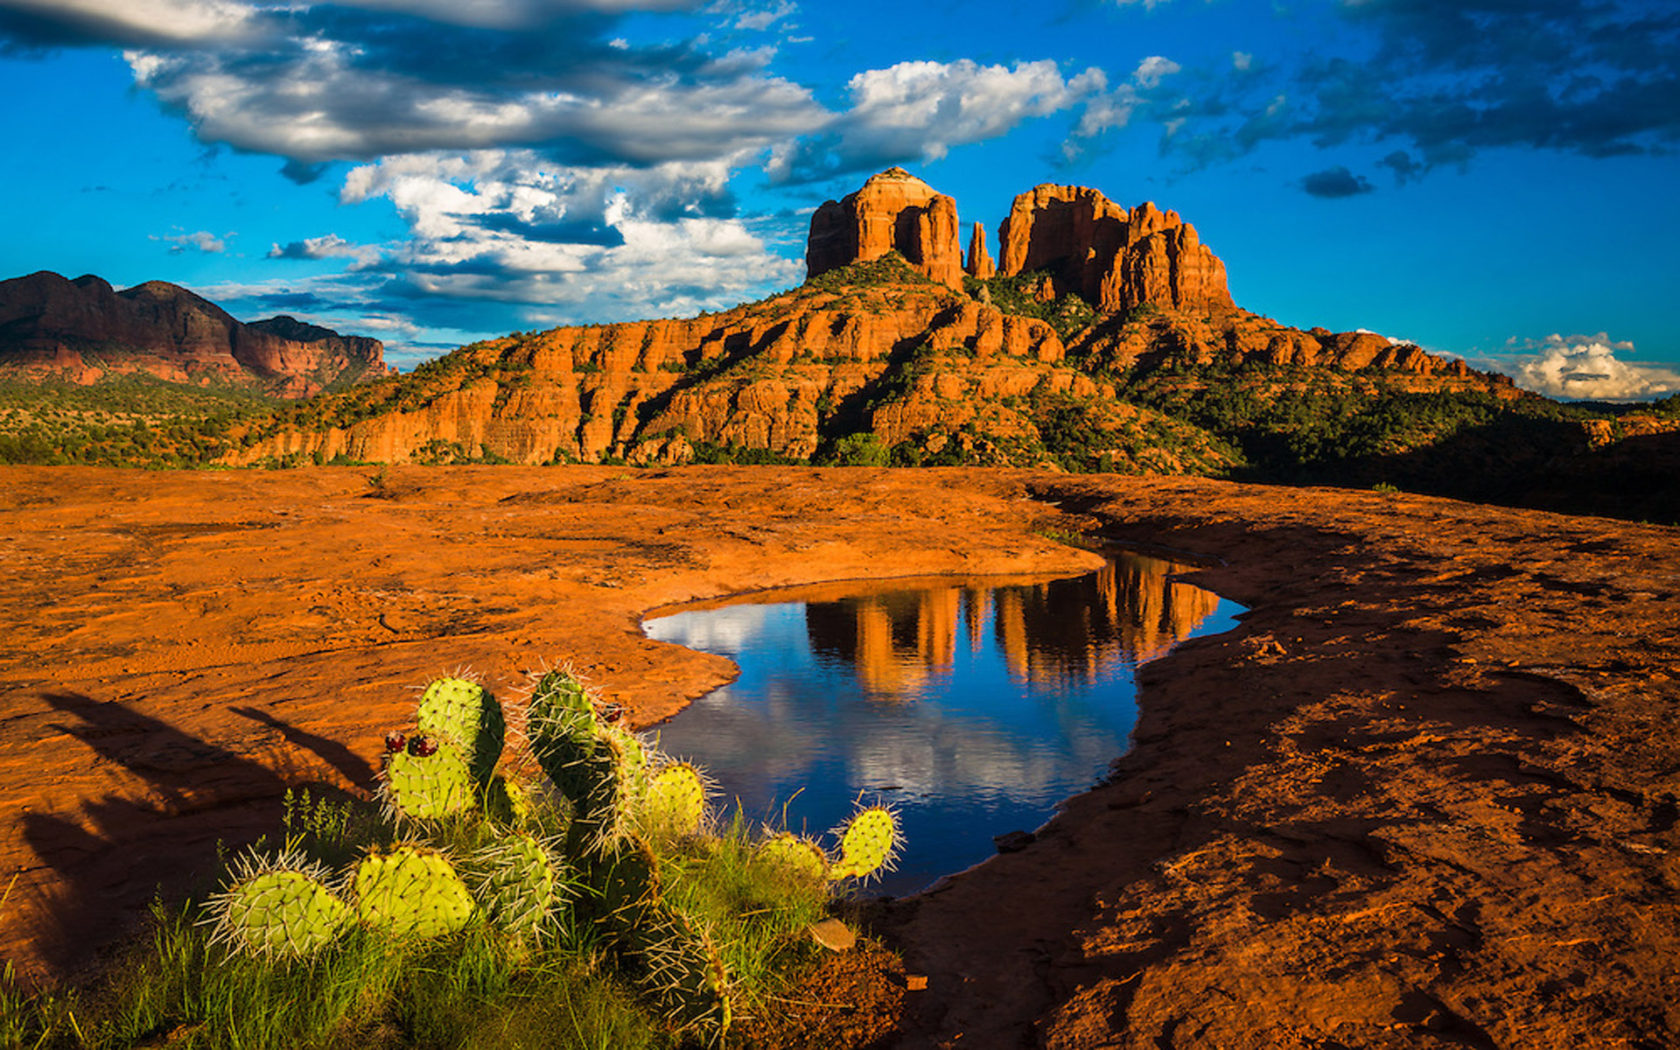 Fall Scenery Wallpaper Landscape Nature Cathedral Rock In Sedona Arizona United